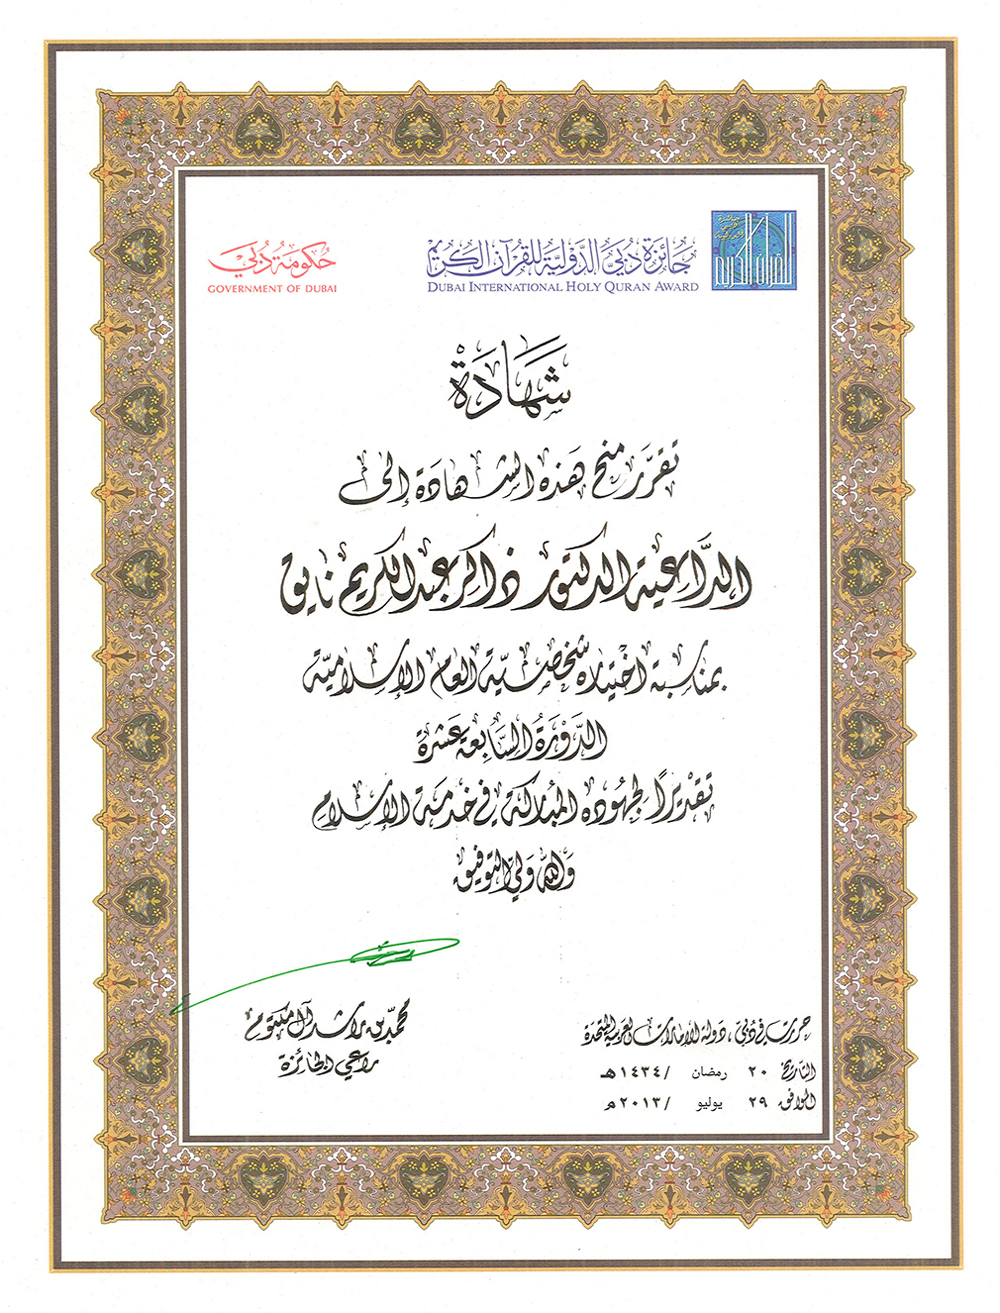 Dubai International Holy Qur'an Award for Islamic Personality